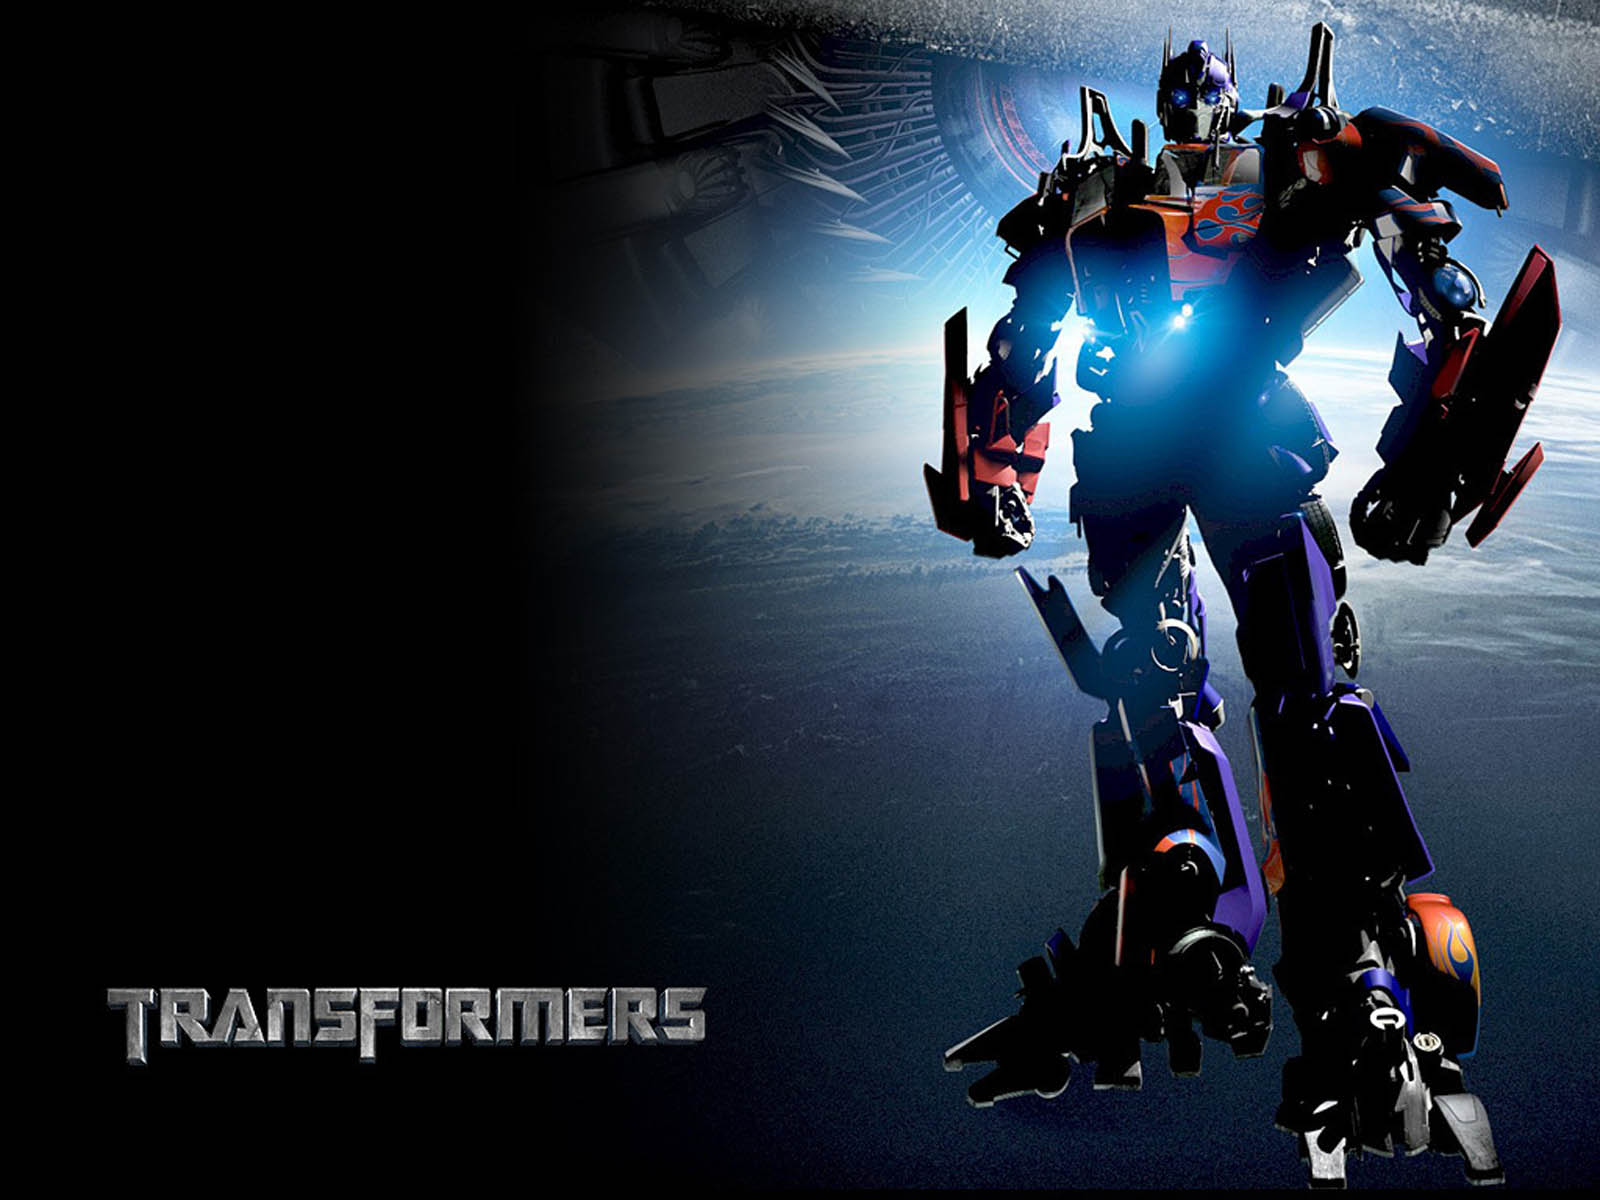 wallpapers: Transformers